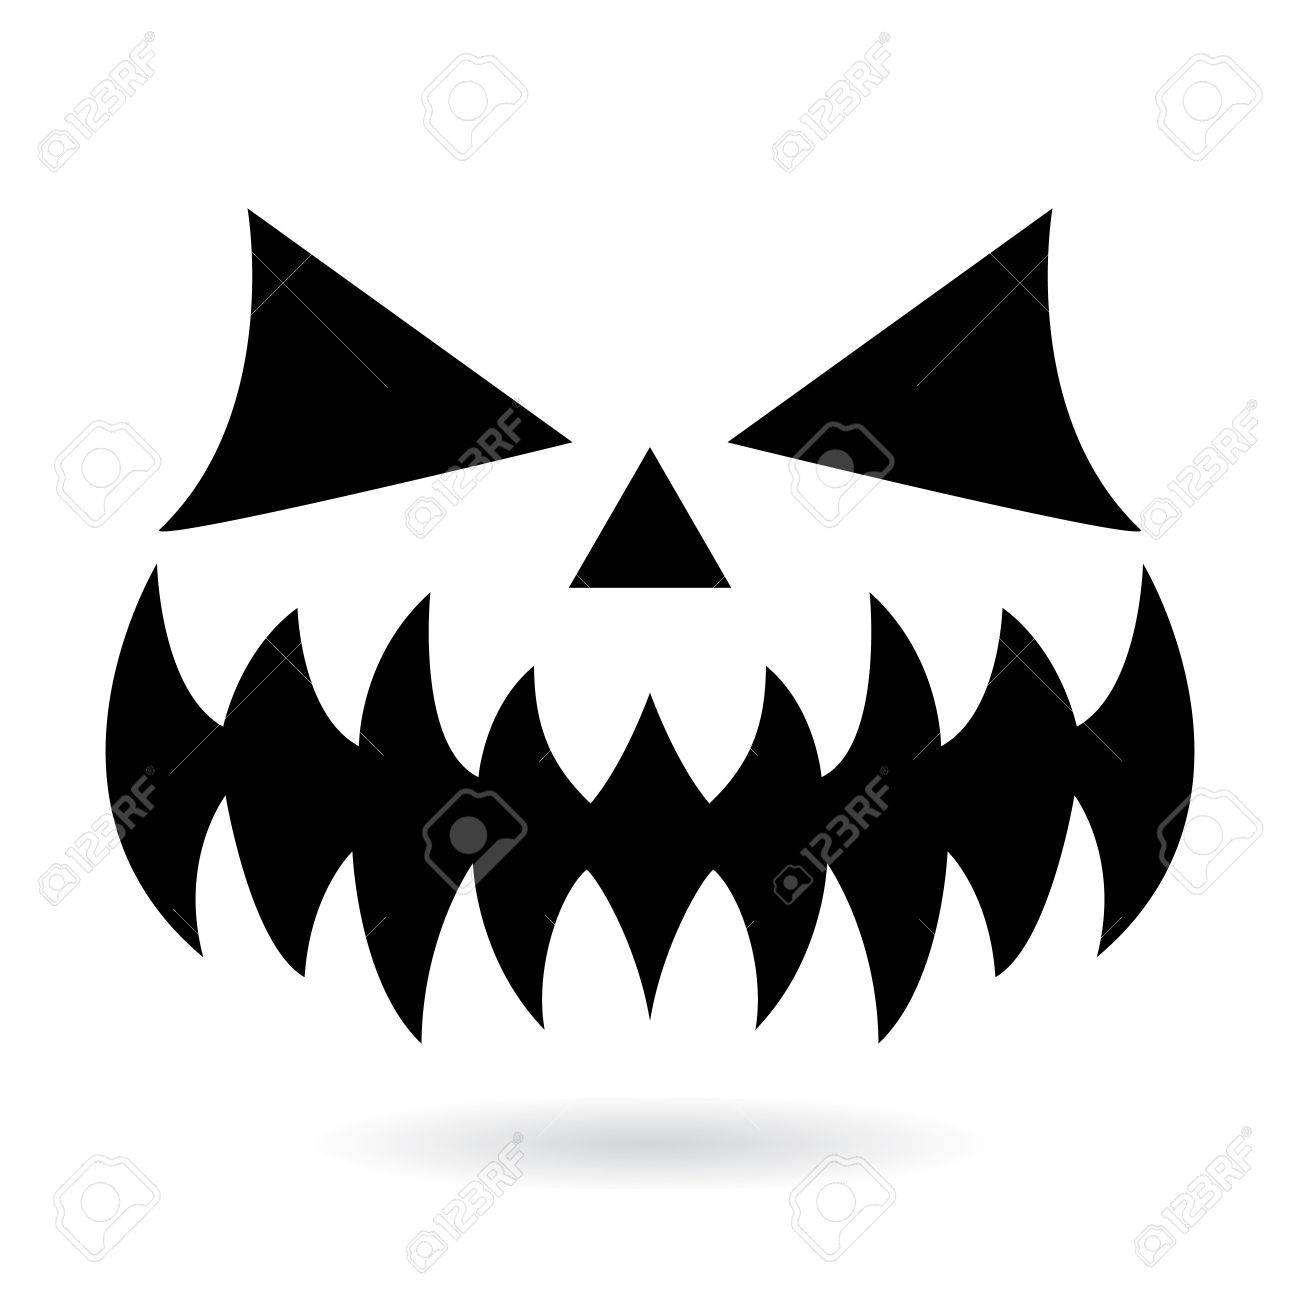 Scary Halloween Pumpkin Face Vector Design, Ghost Or Monster ...